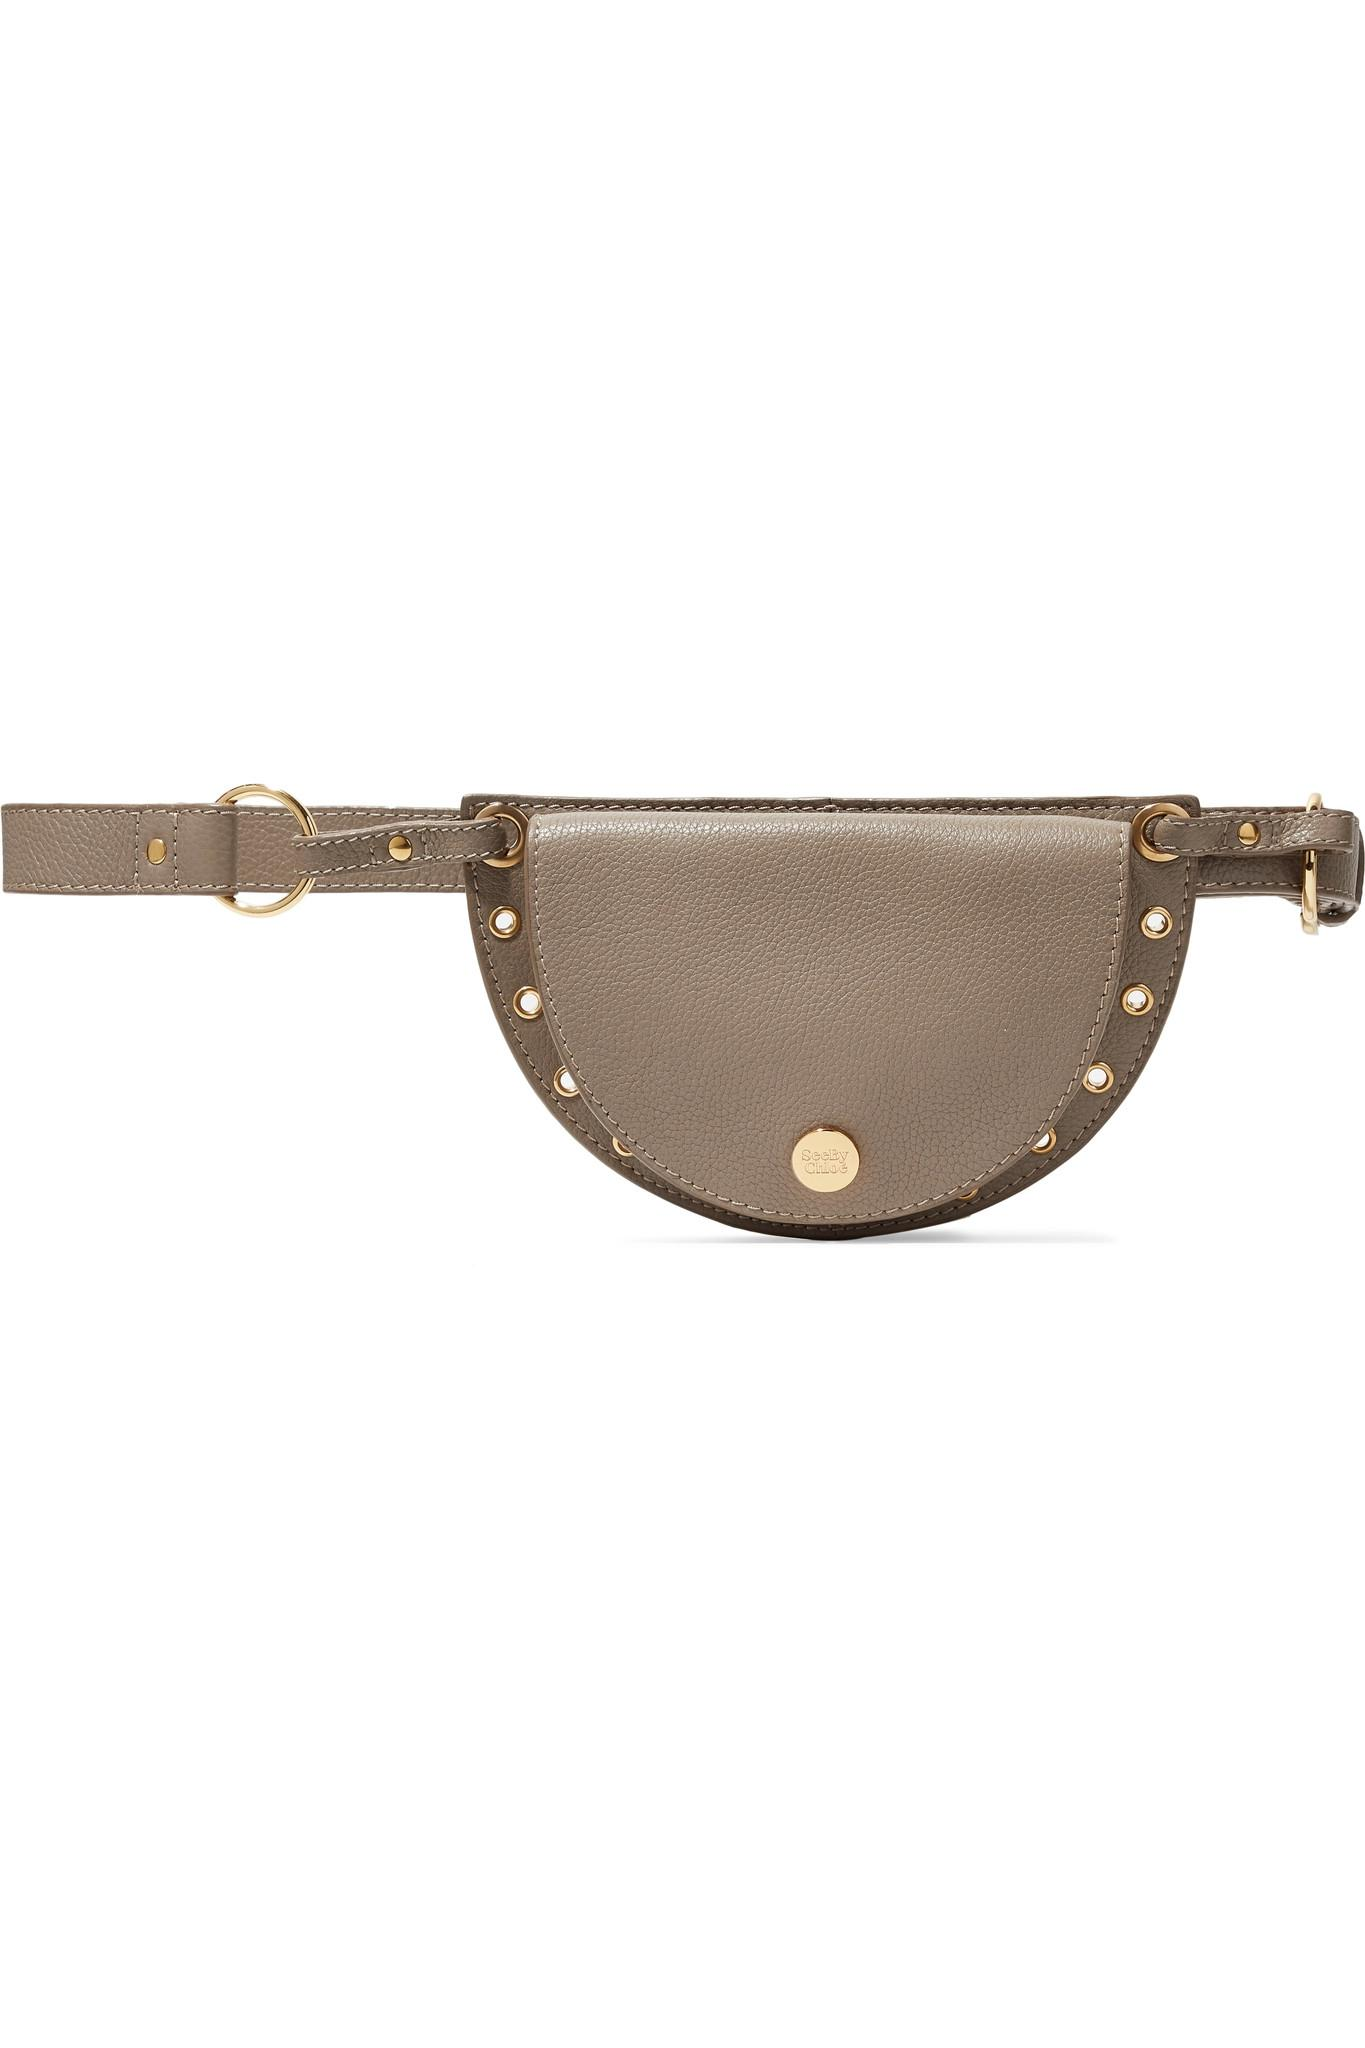 79420b56f0d7 see-by-chloe-gray-Kriss-Eyelet-embellished-Textured-leather-Belt-Bag.jpeg